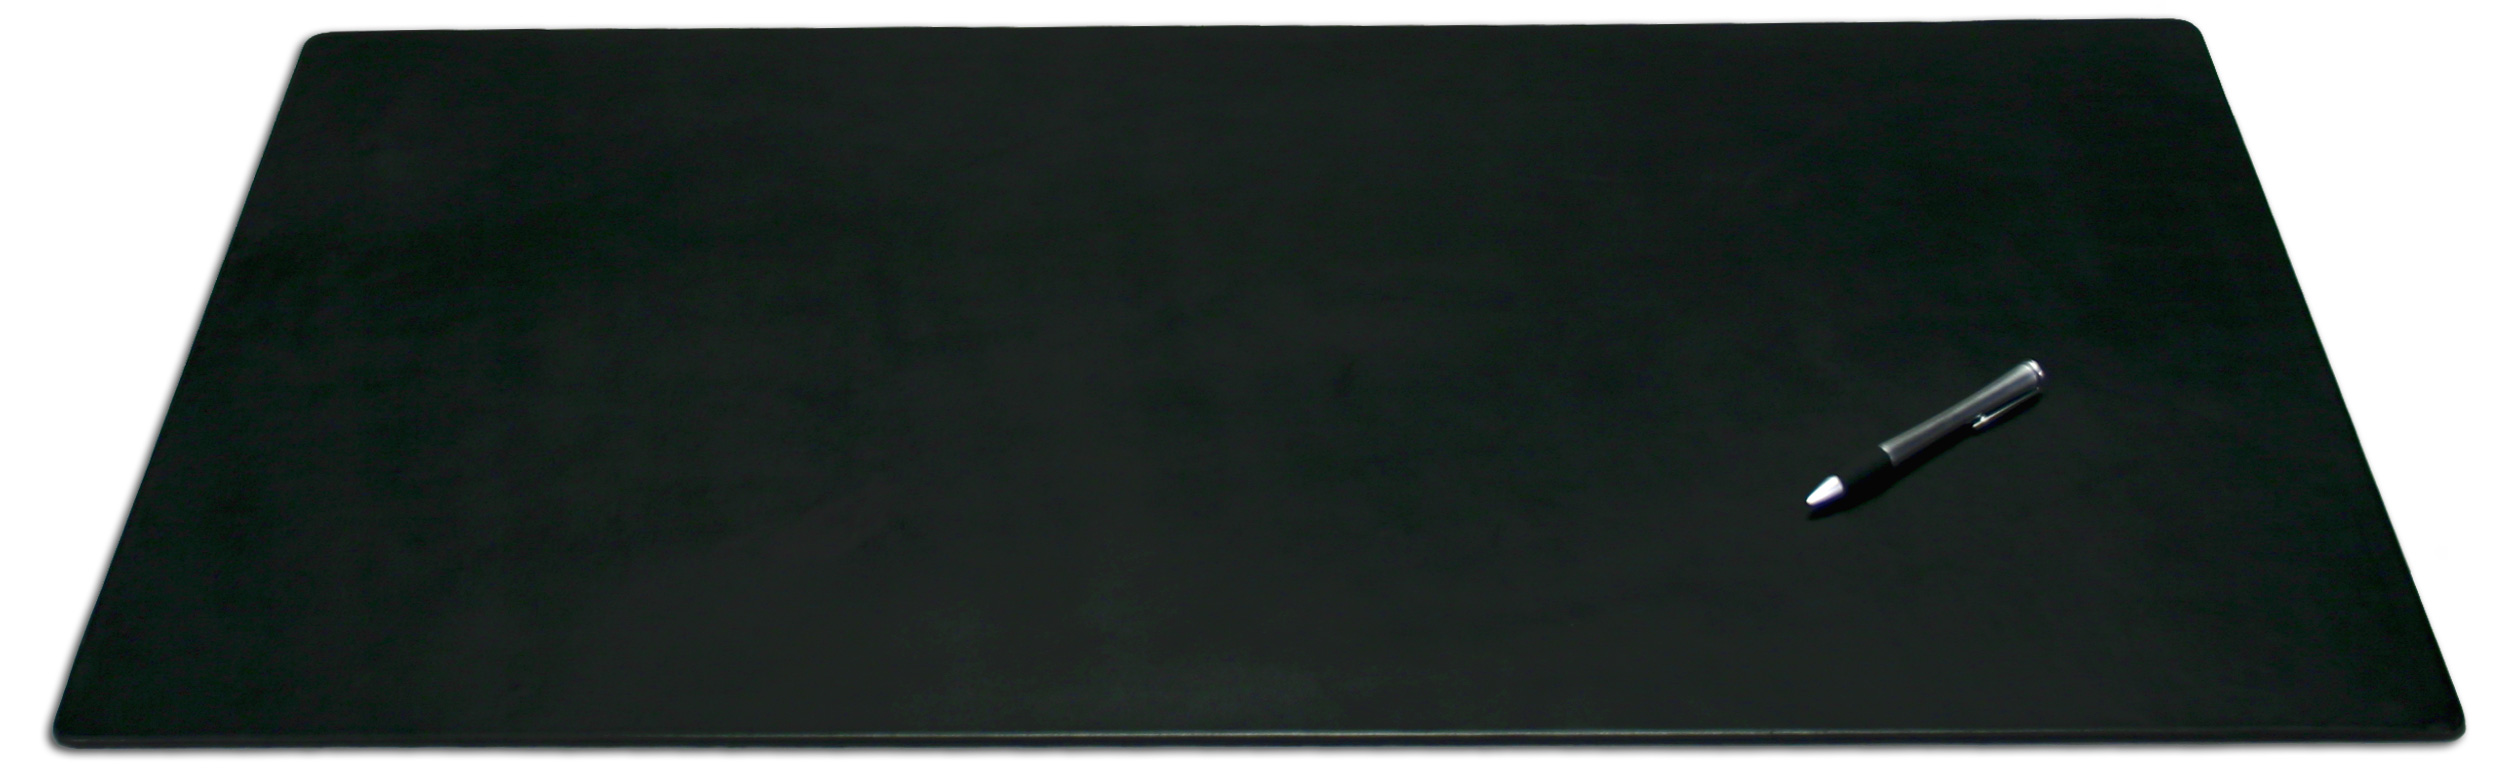 Black Leather X Desk Mat Without Rails Com